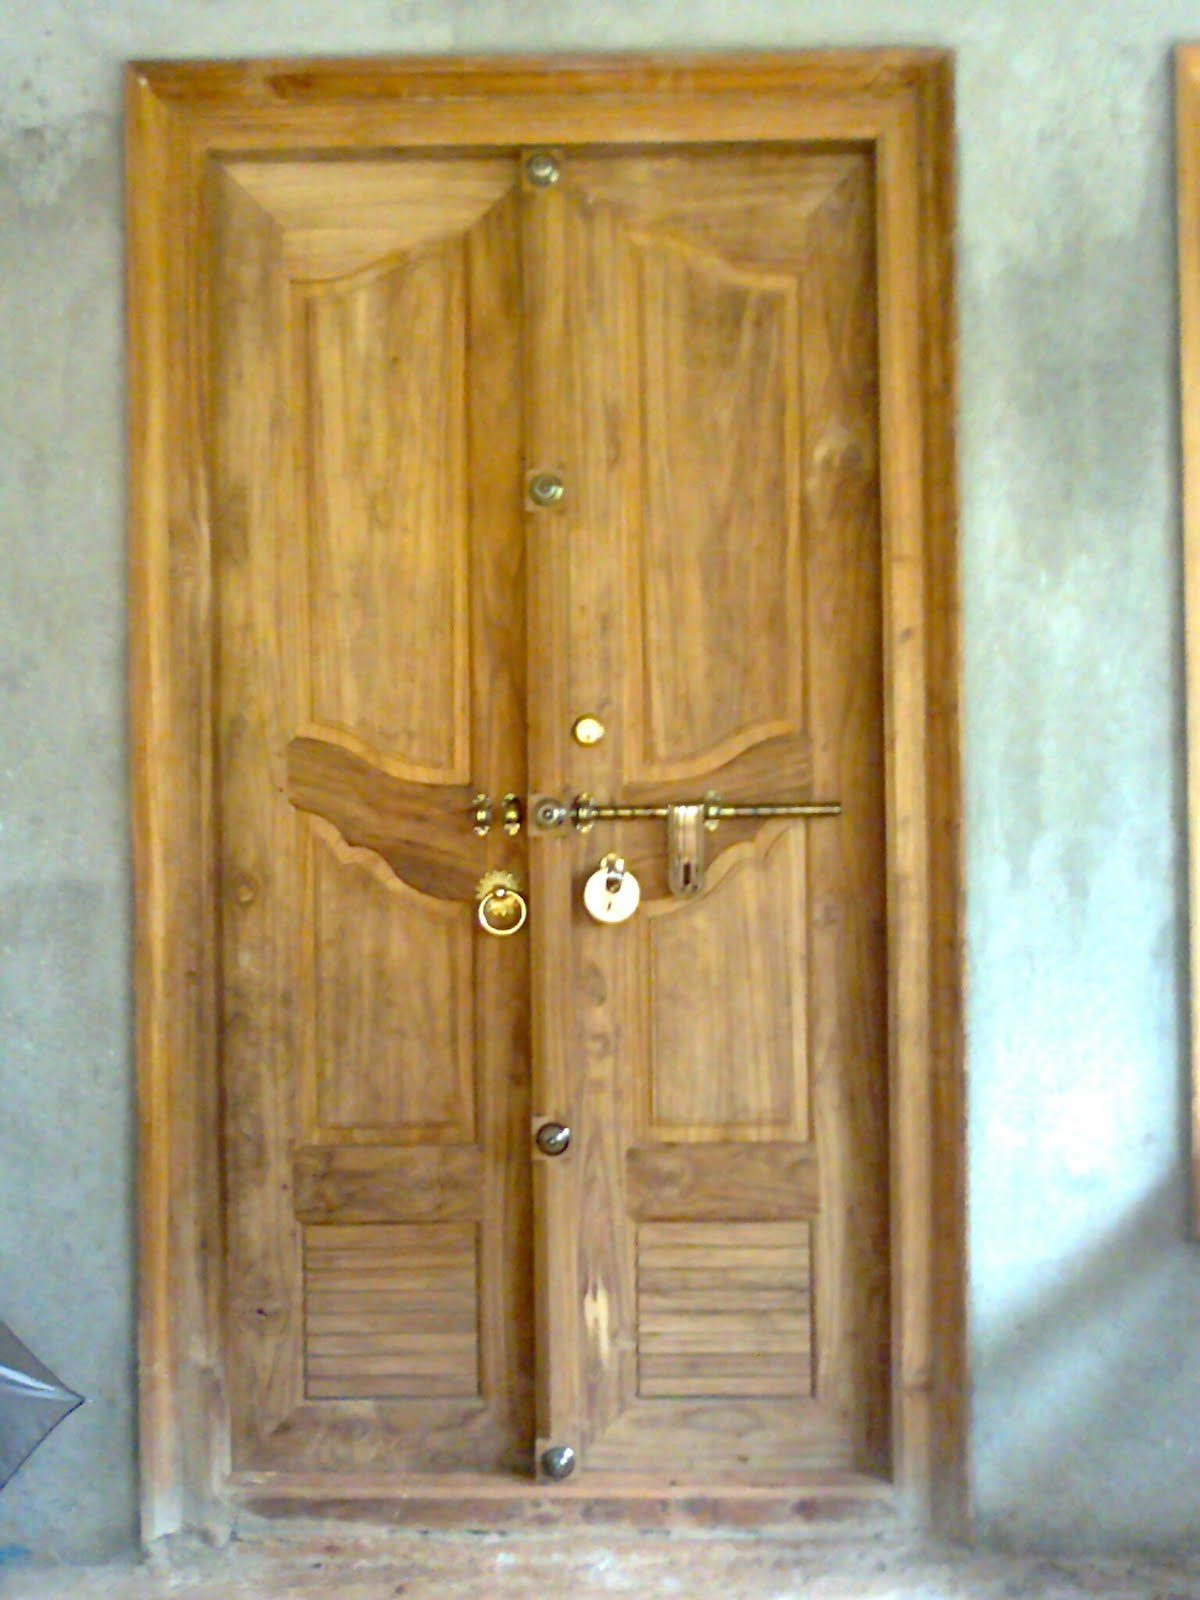 The shrinkage on the wooden door home design ideas for Wood door design latest